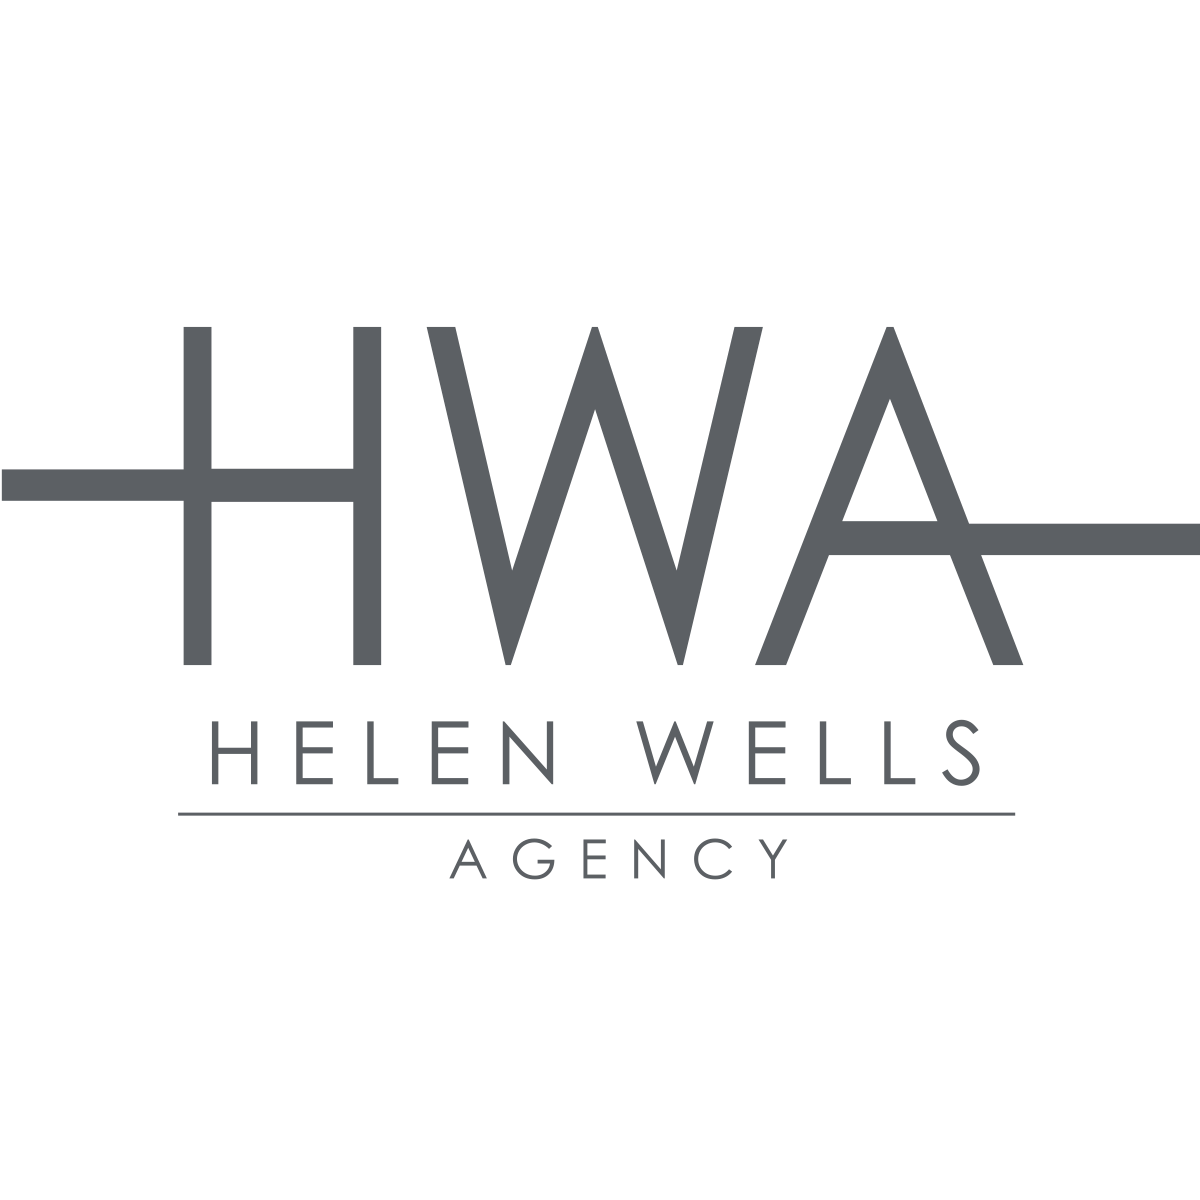 Helen Wells - Top Nearby Promotional Model and Talent Agency Indianapolis IN